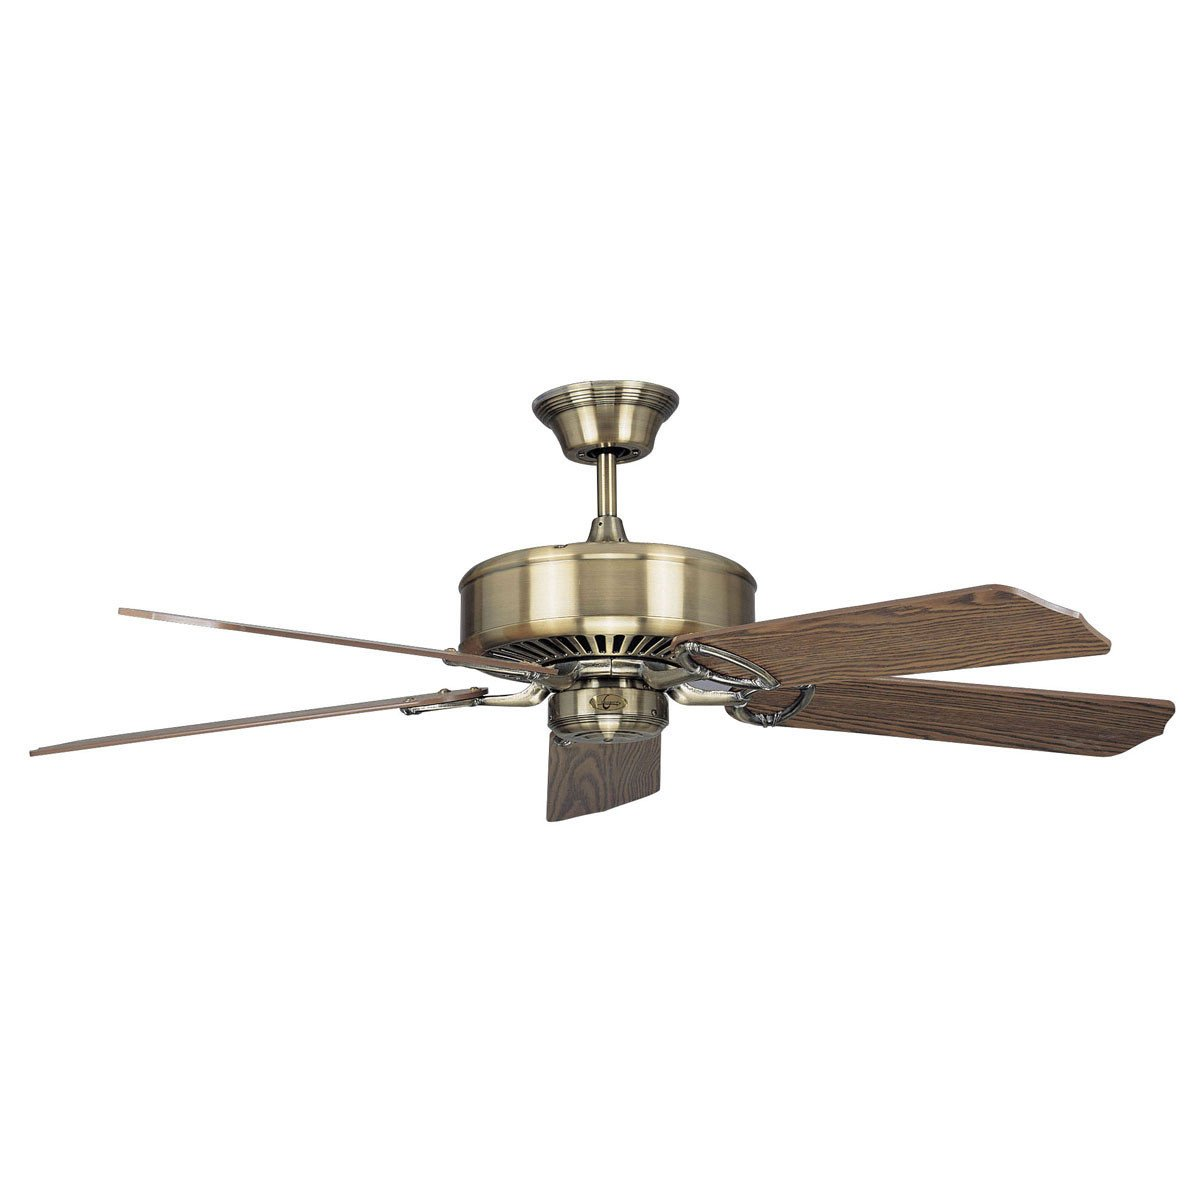 "Concord Fans 60"" Madison Large Antique Brass Modern Ceiling Fan"